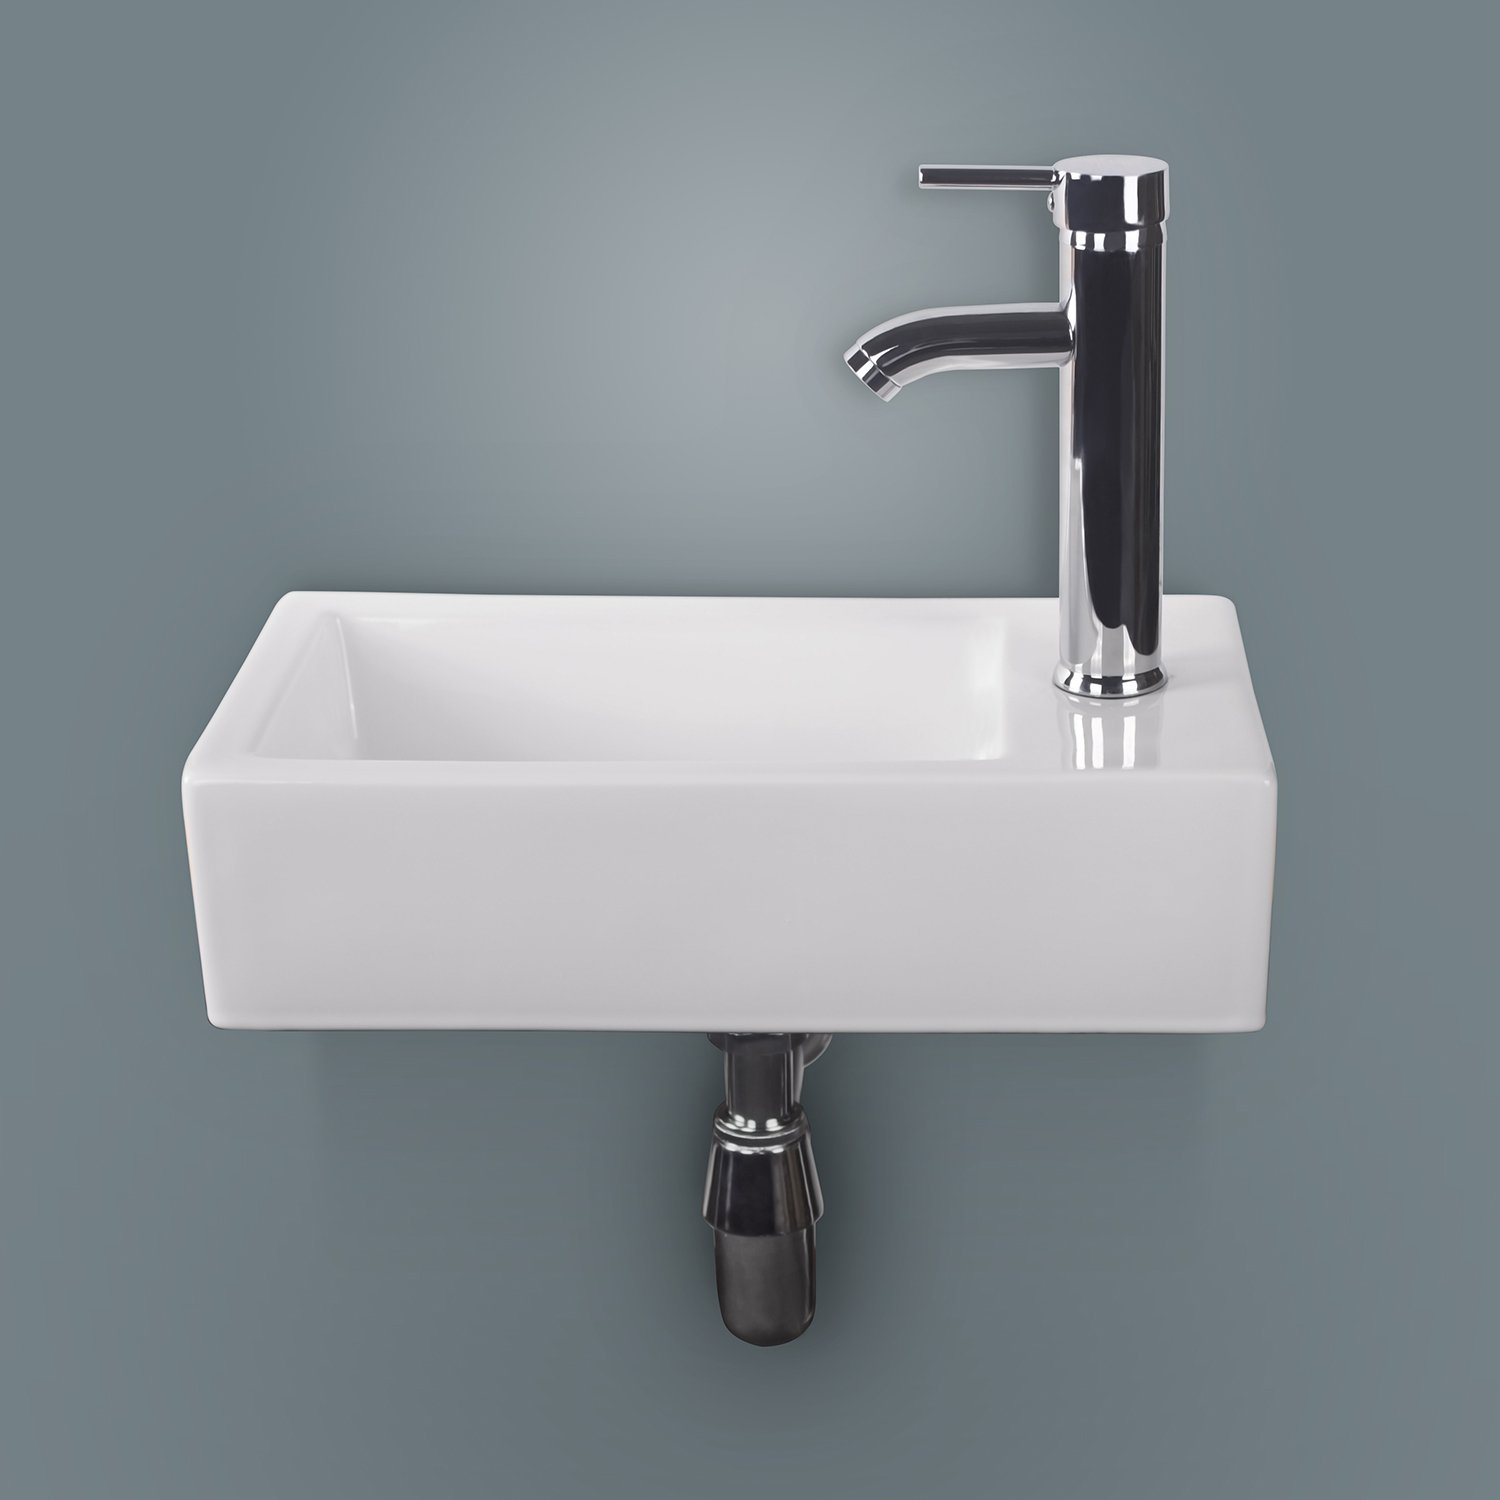 Sliverylake Wall Mount Rectangle White Porcelain Wall-Hung Corner Ceramic Vessel Sink Small & Chrome Faucet Combo by Sliverylake